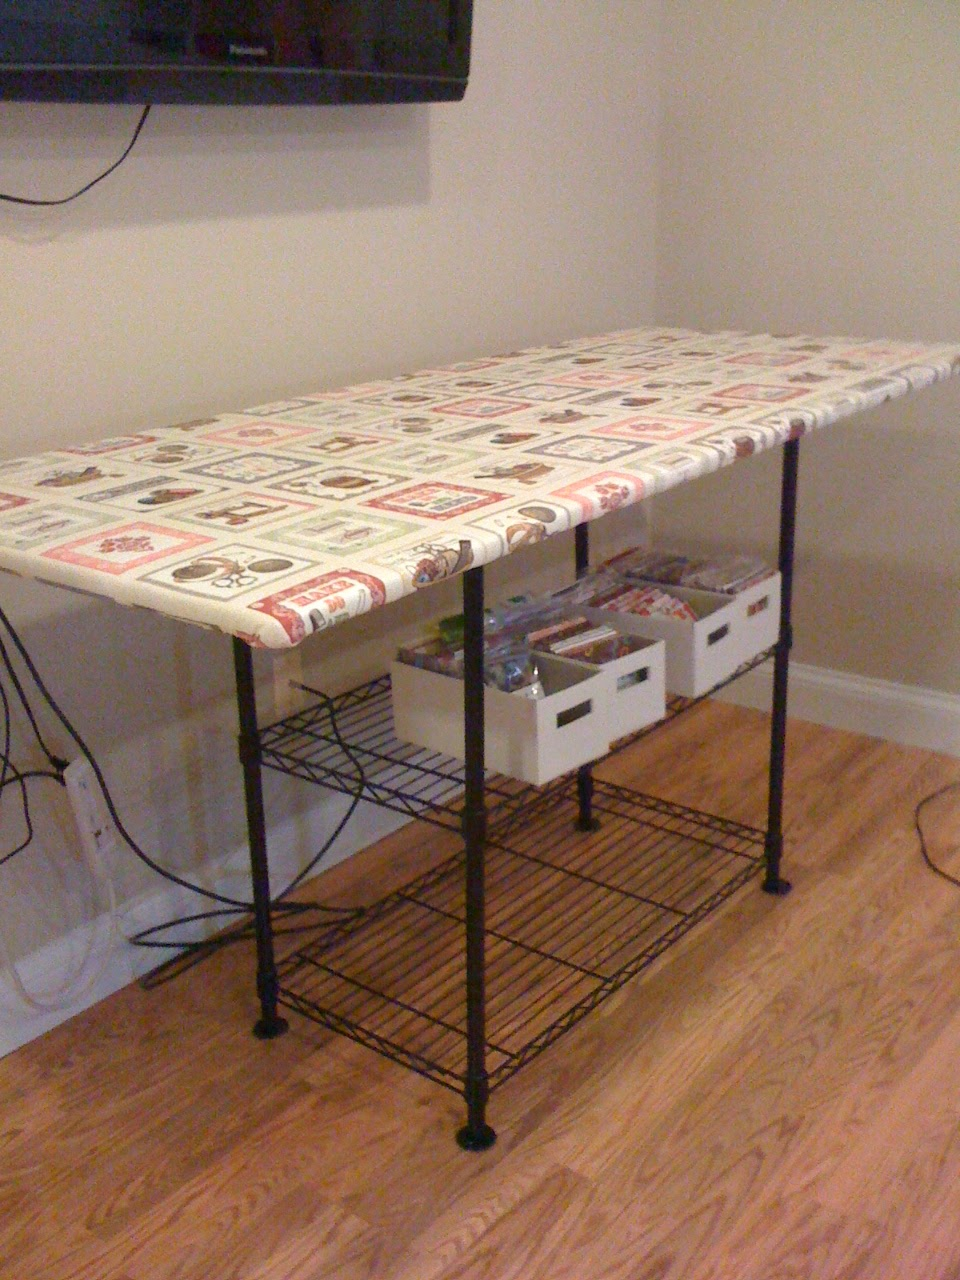 Karen's Sewing Room: Ironing Station : ironing table for quilting - Adamdwight.com